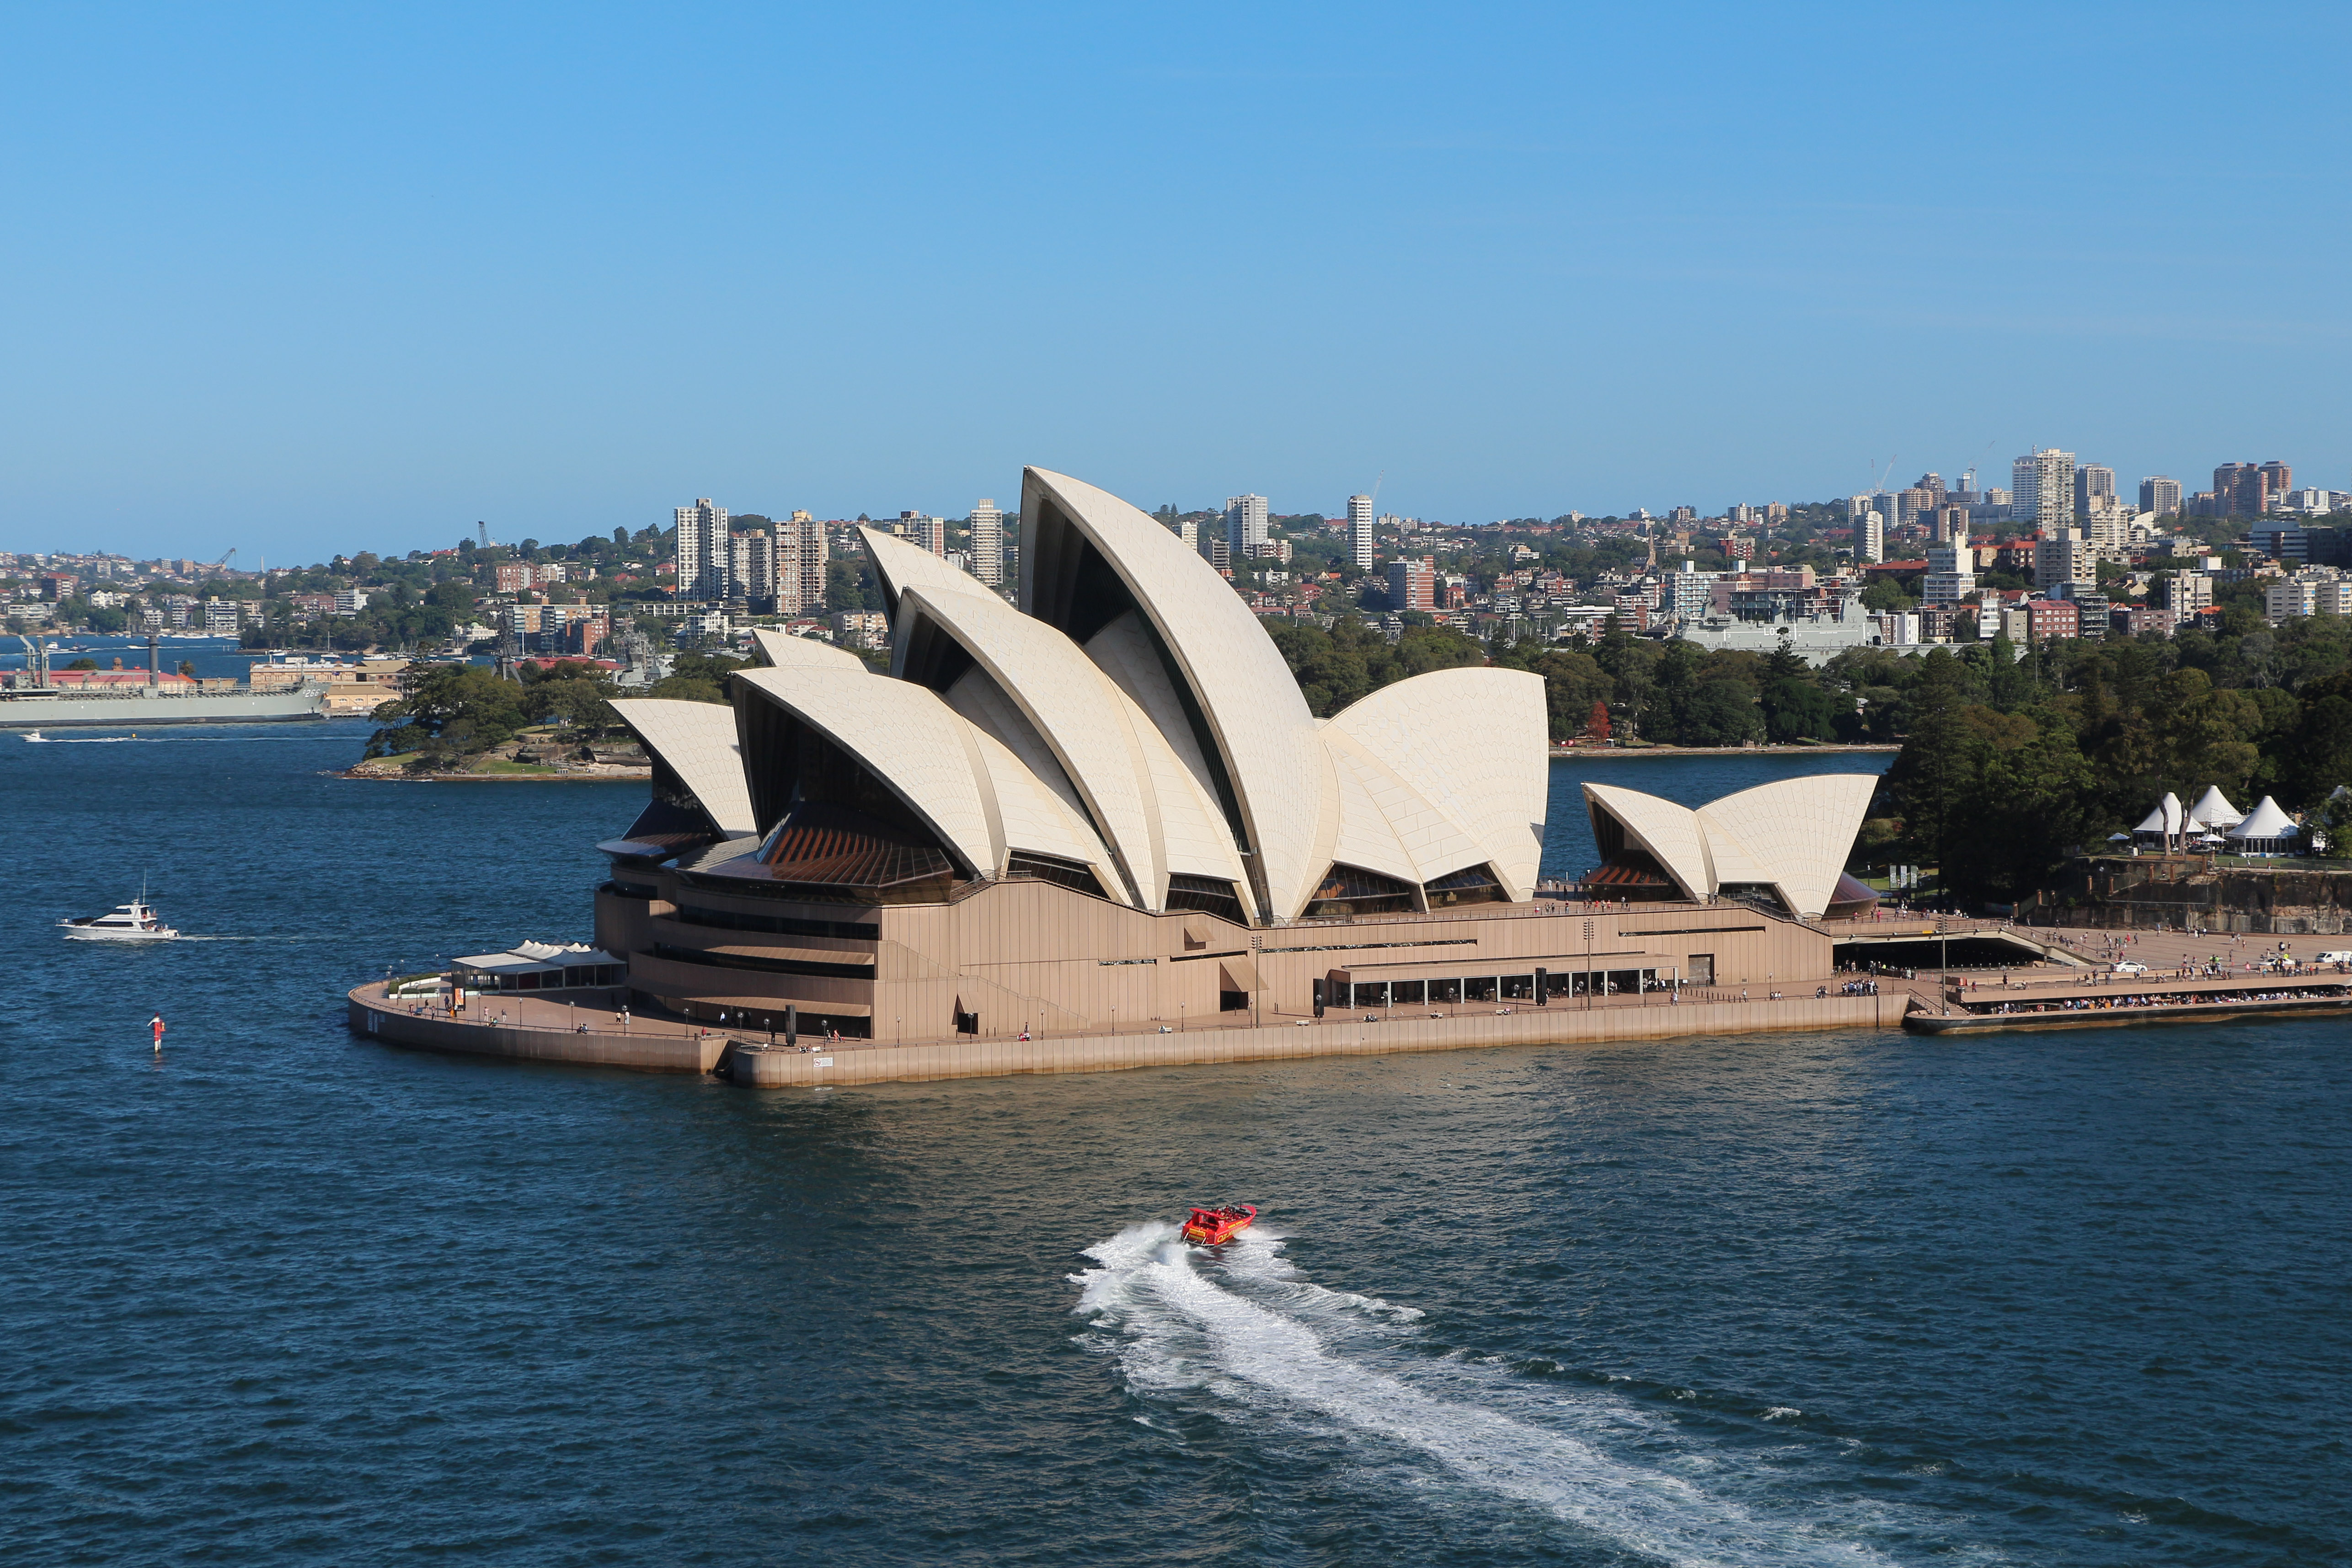 File:Sydney Opera House 01.jpg - Wikimedia Commons